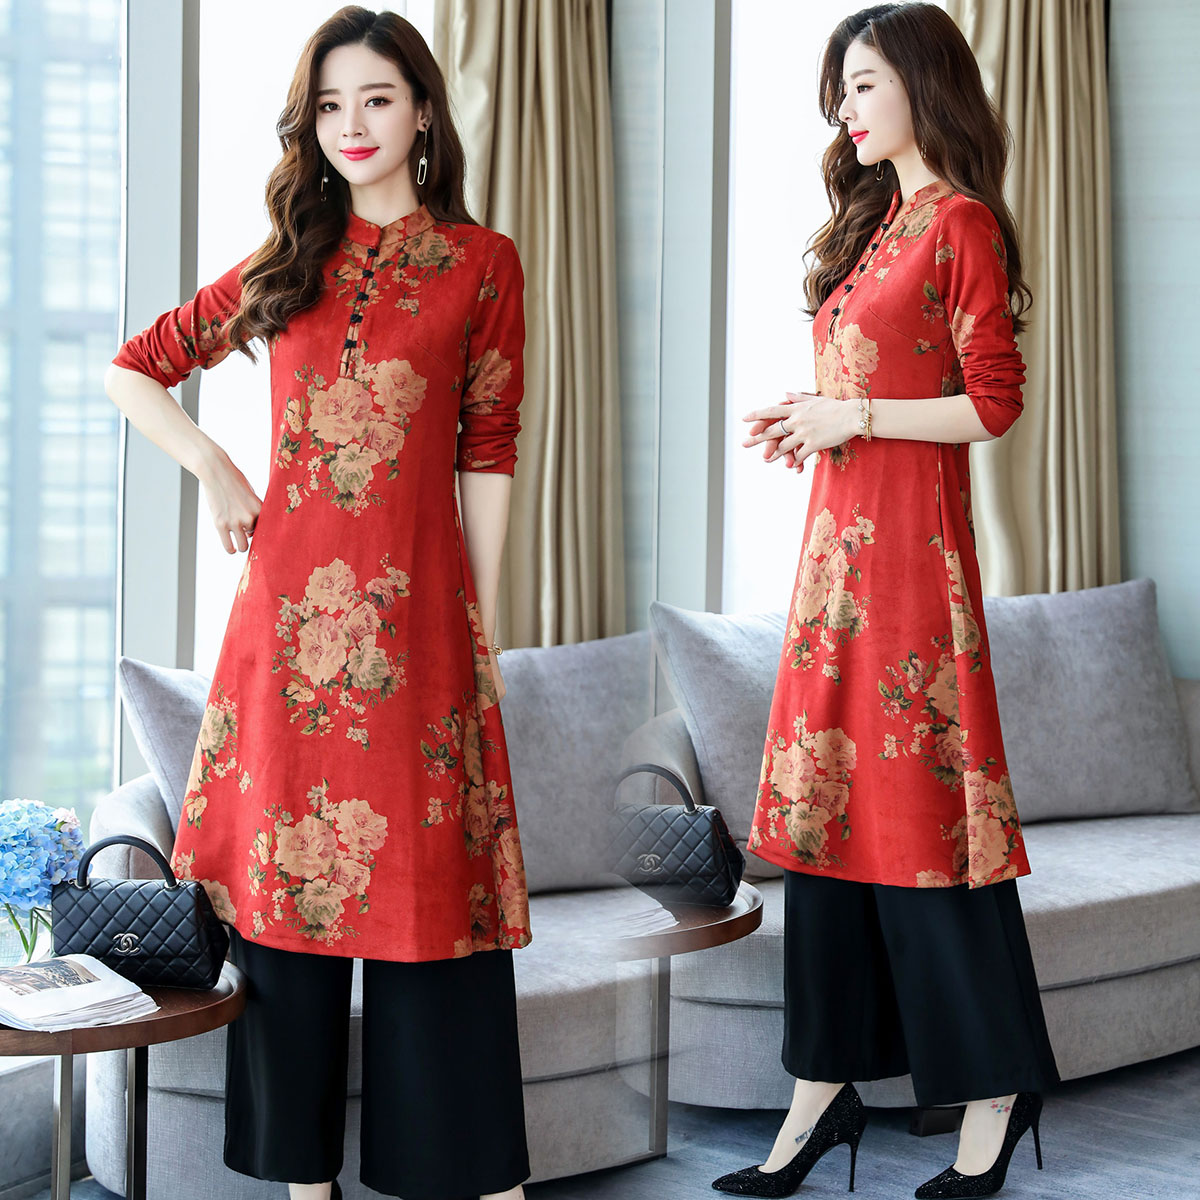 Ethnic Women's Clothing 2018 Autumn New Slimming Retro Improved Cheongsam Dress Pants Set Two-piece Suit